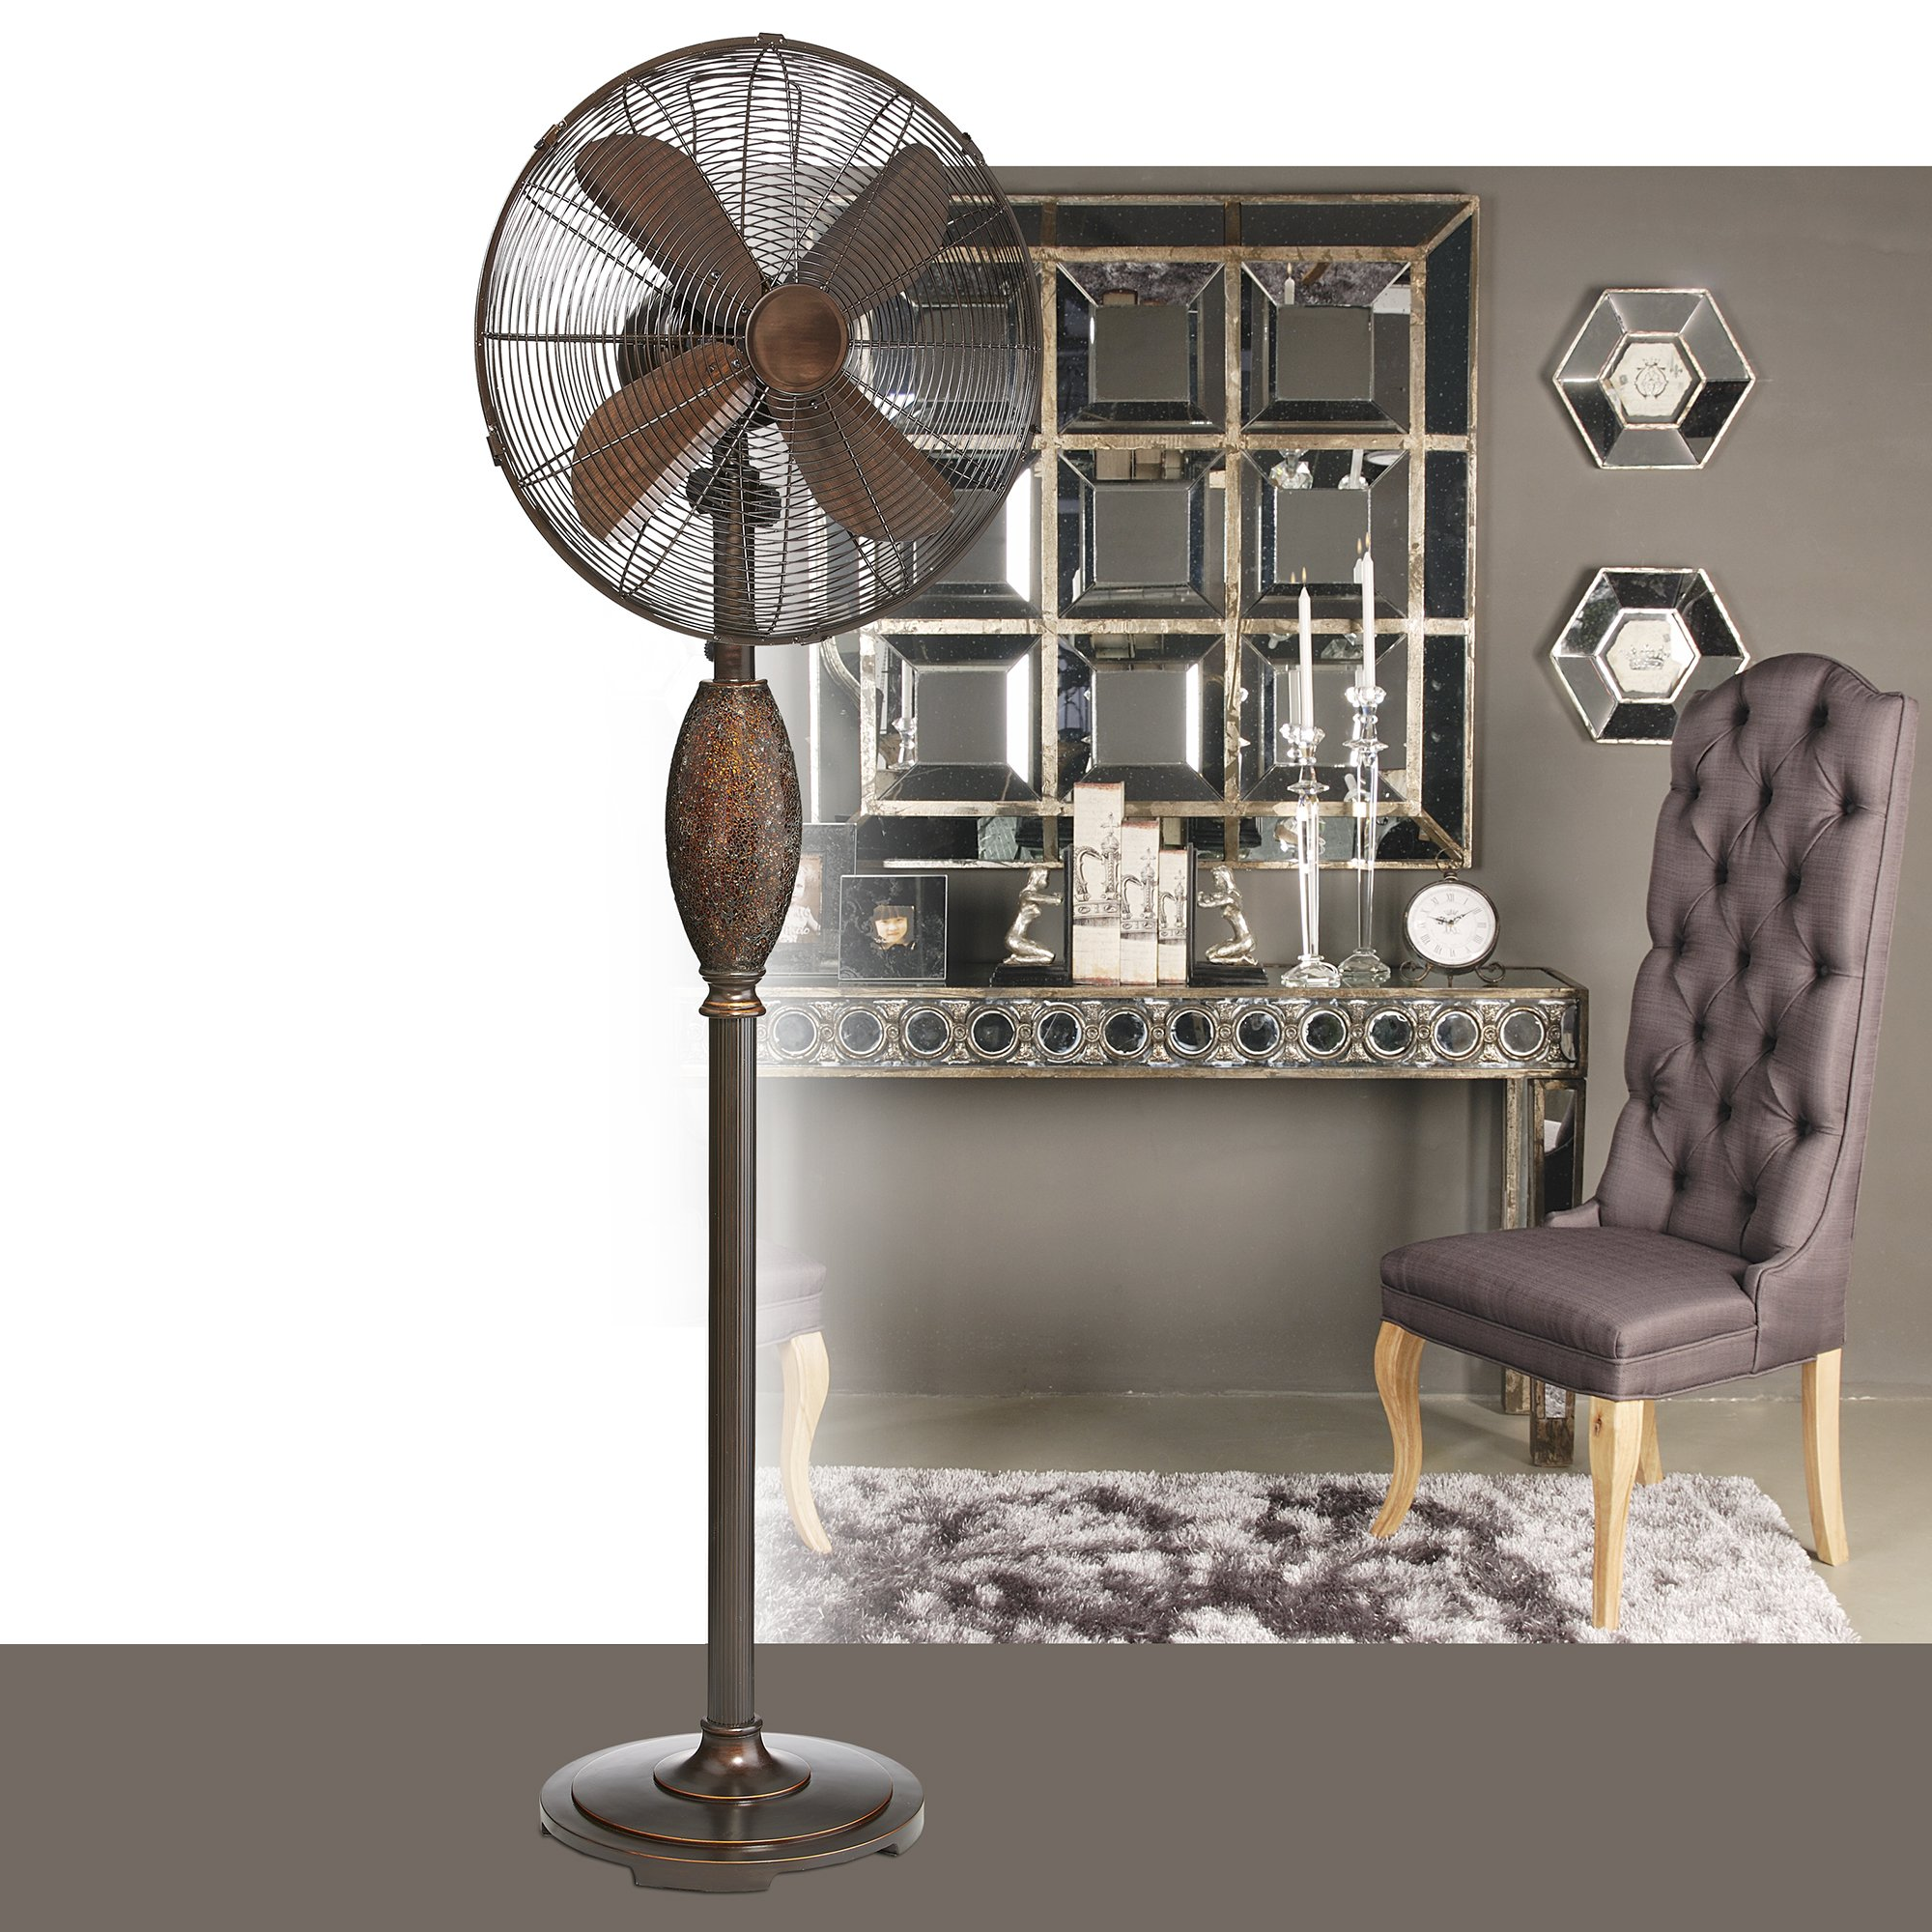 Floor Standing Fan, Oscillating Floor Fan, 3-Speed Harmony